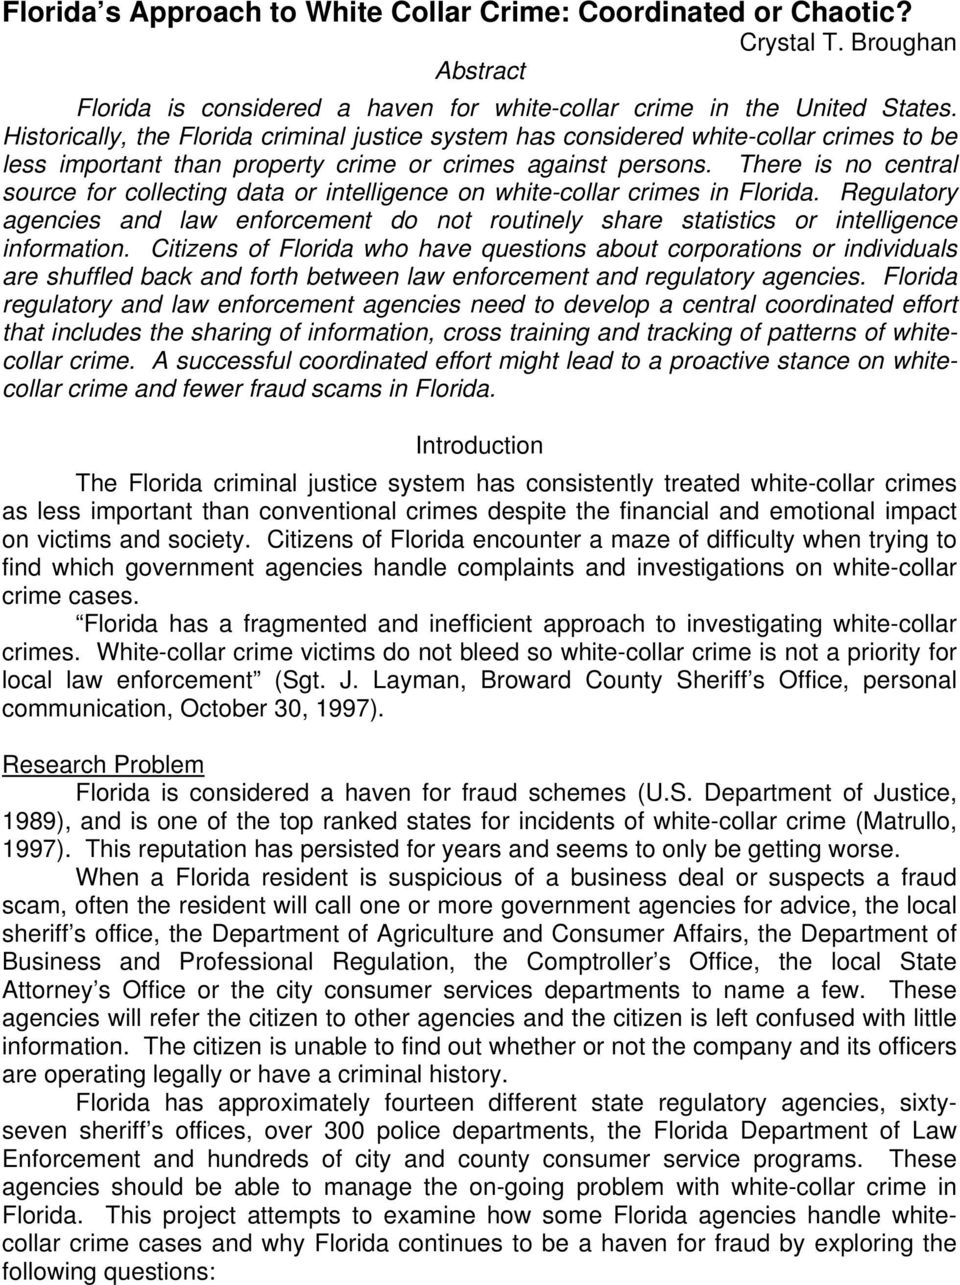 There is no central source for collecting data or intelligence on white-collar crimes in Florida. Regulatory agencies and law enforcement do not routinely share statistics or intelligence information.